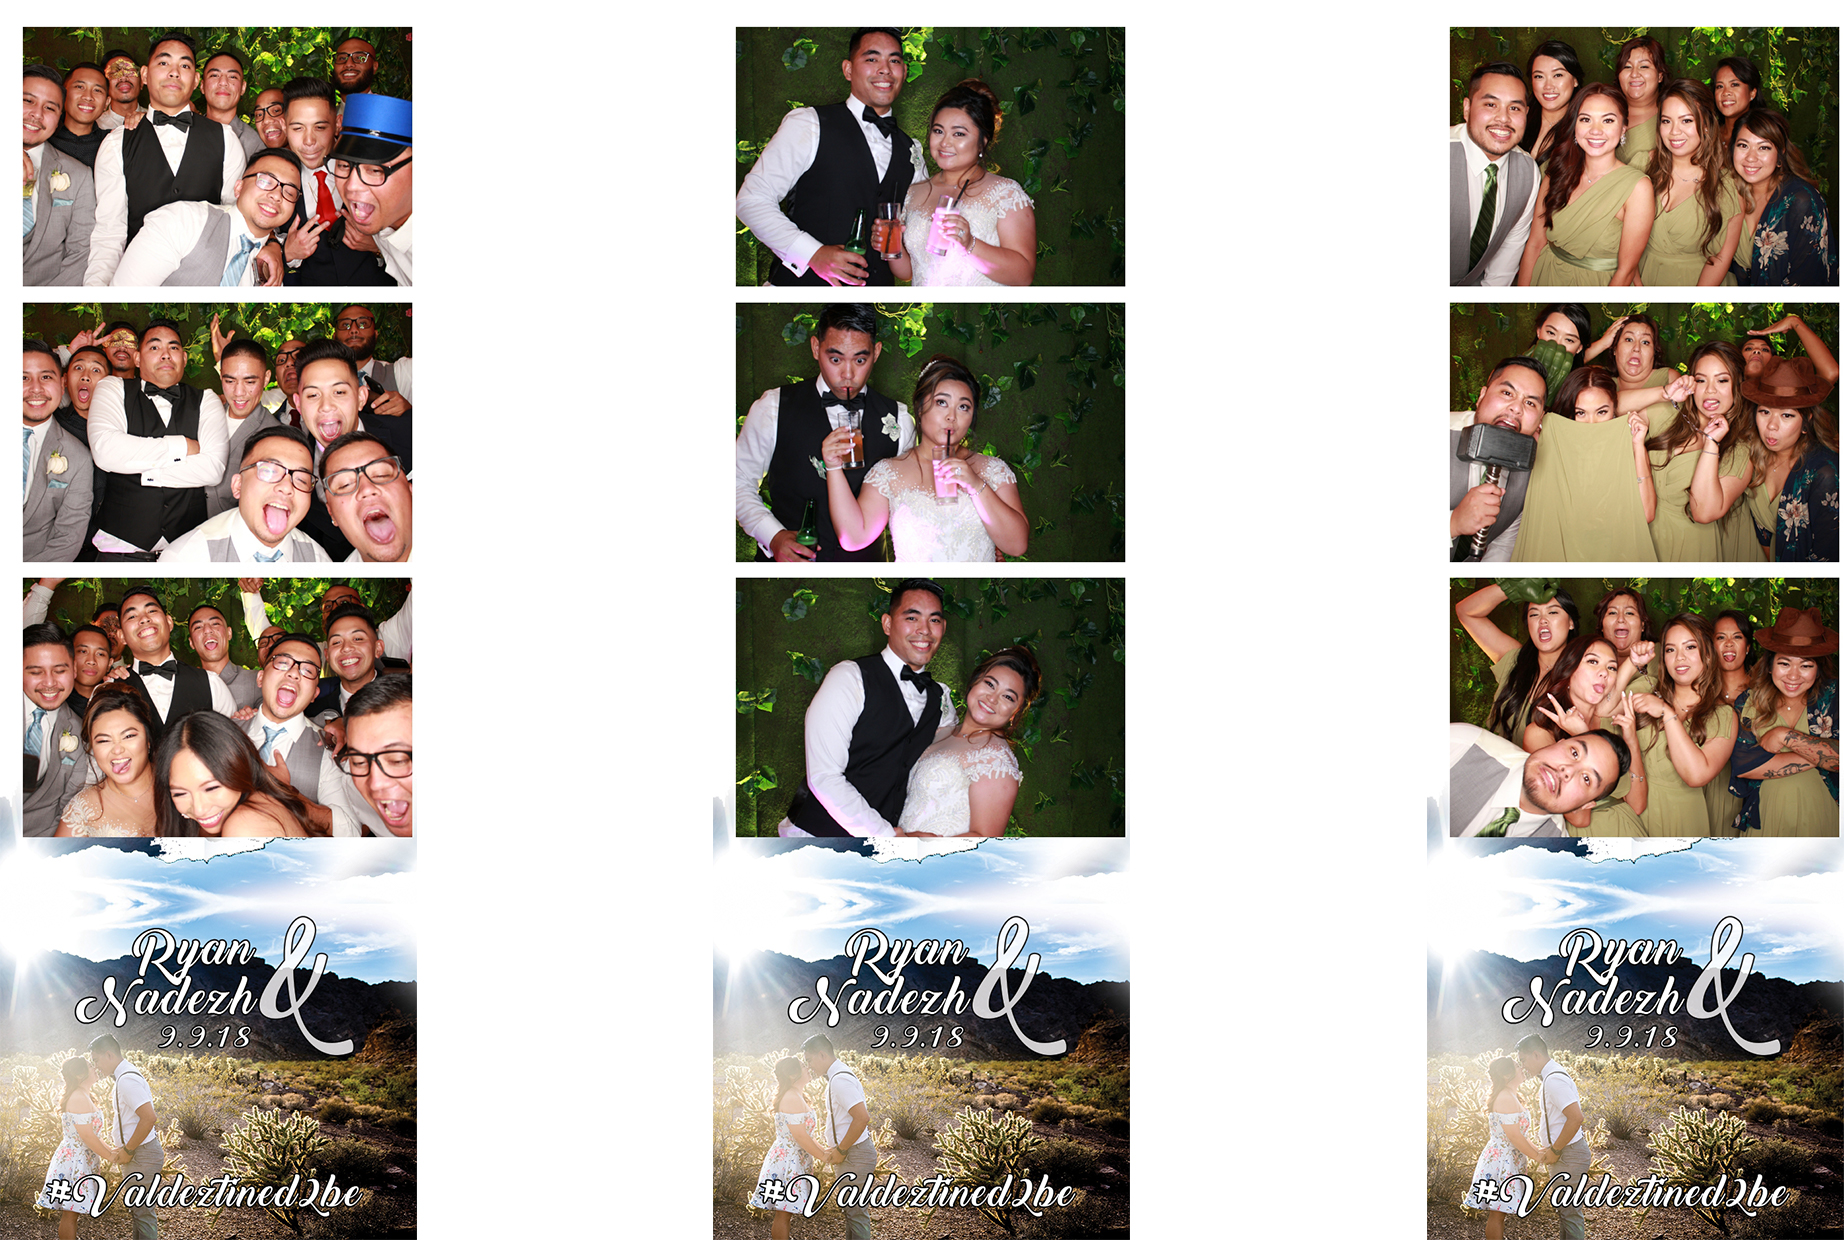 Ryan & Nadezh's Wedding